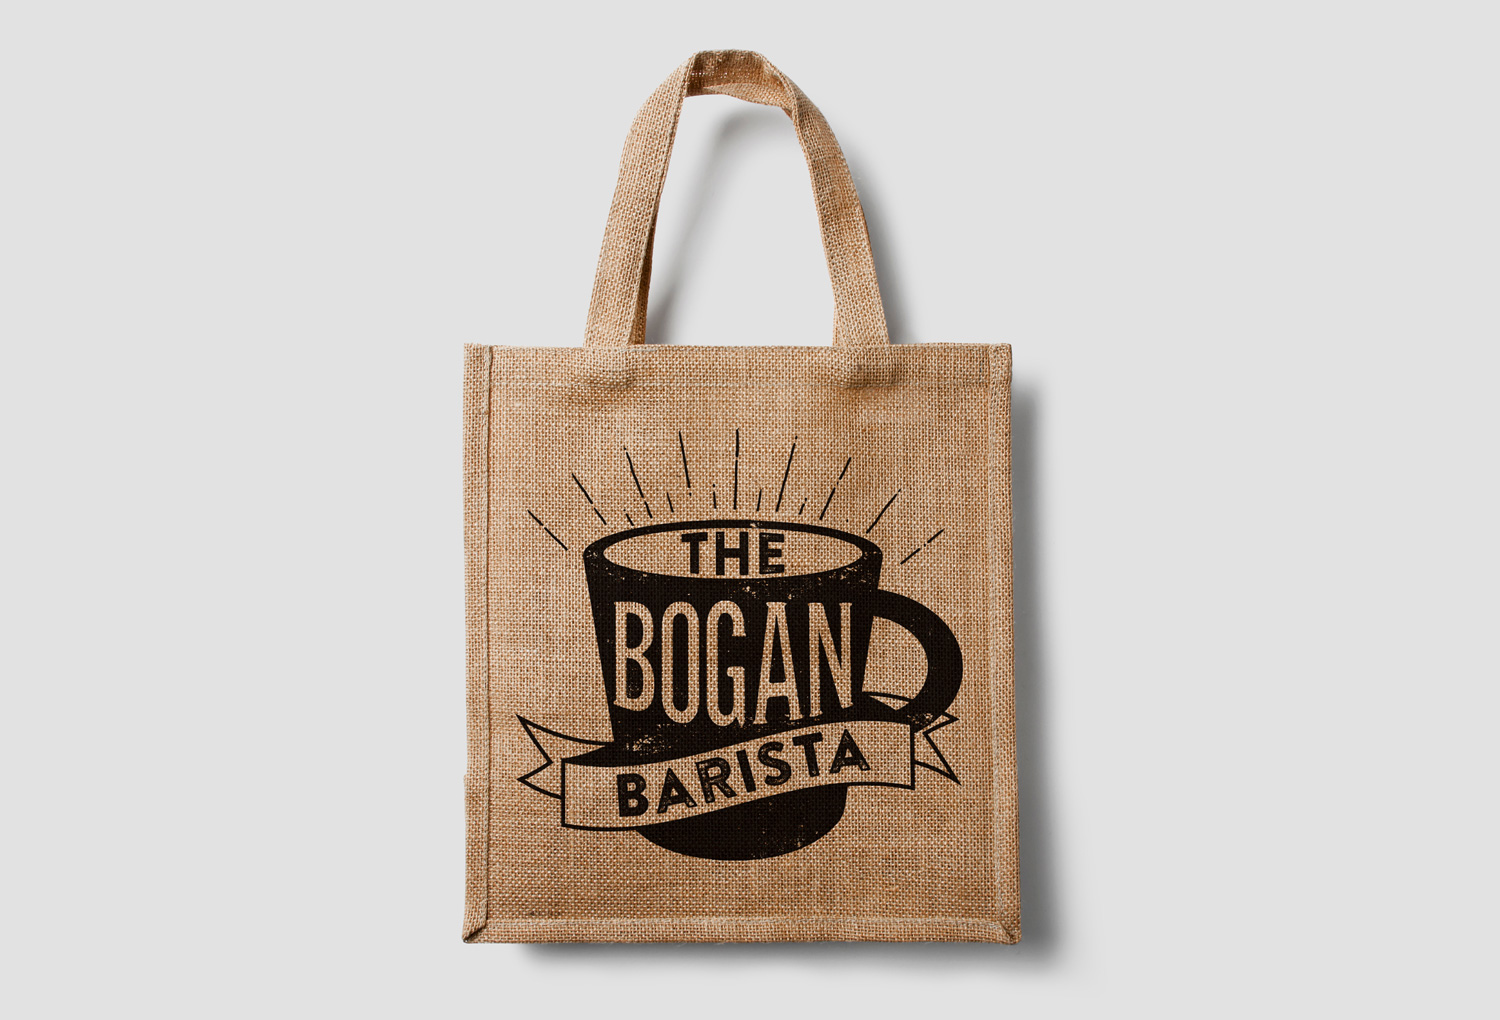 The B  ogan Barista tote bag